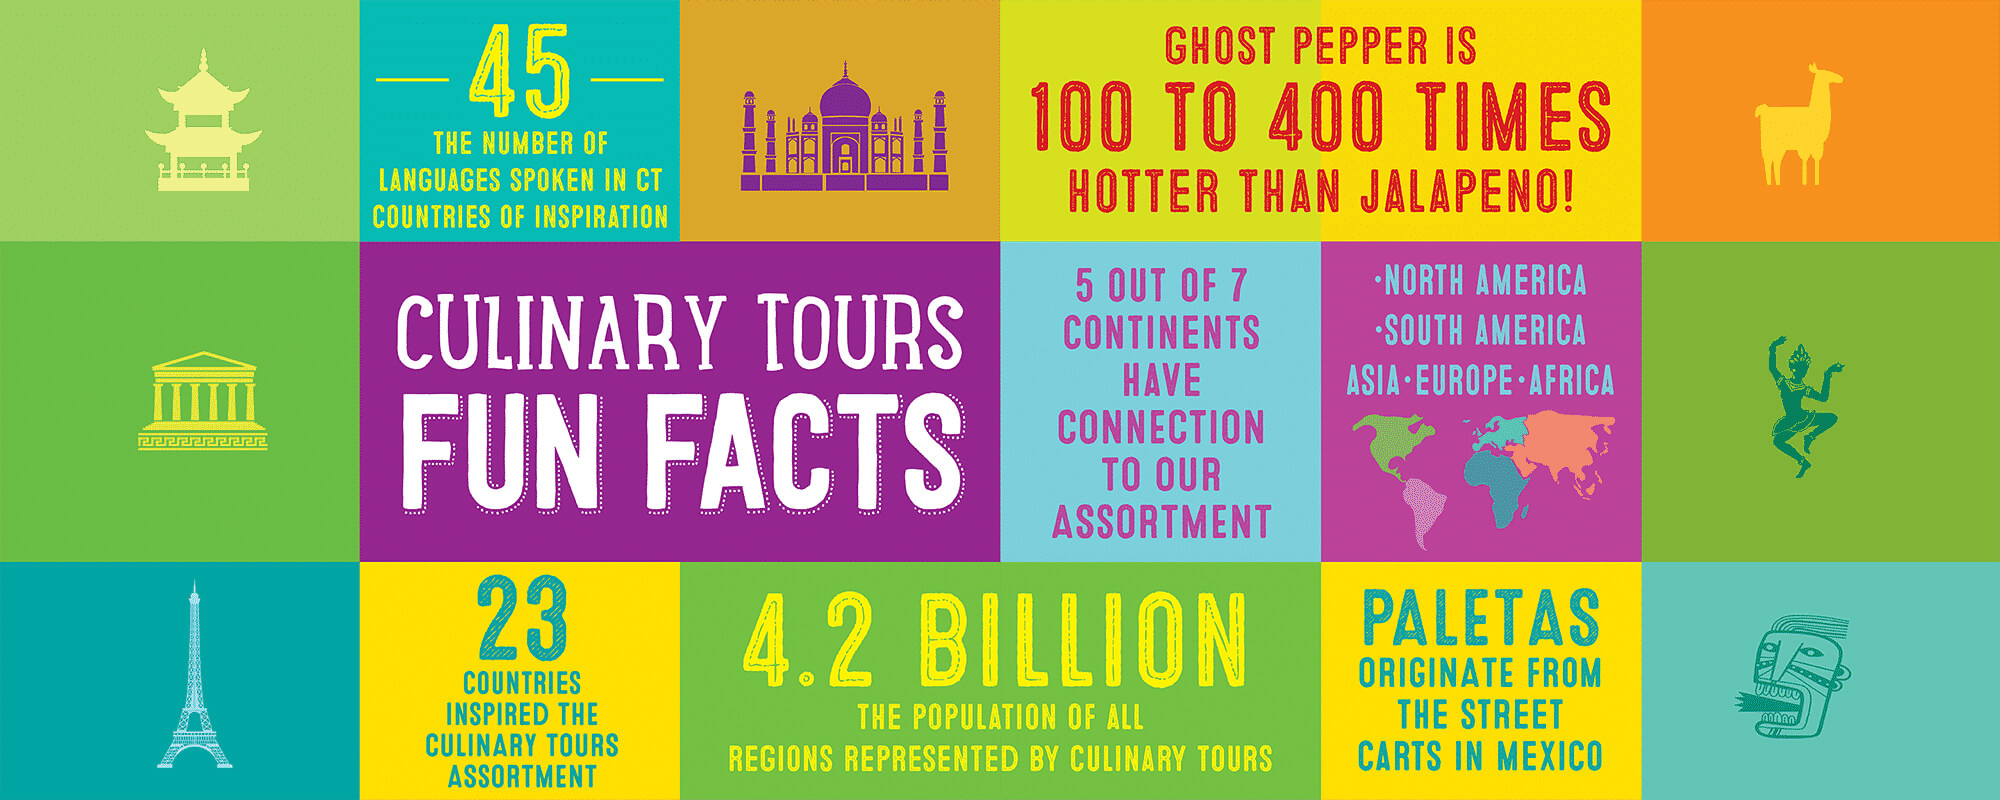 Culinary Tours Fun Facts